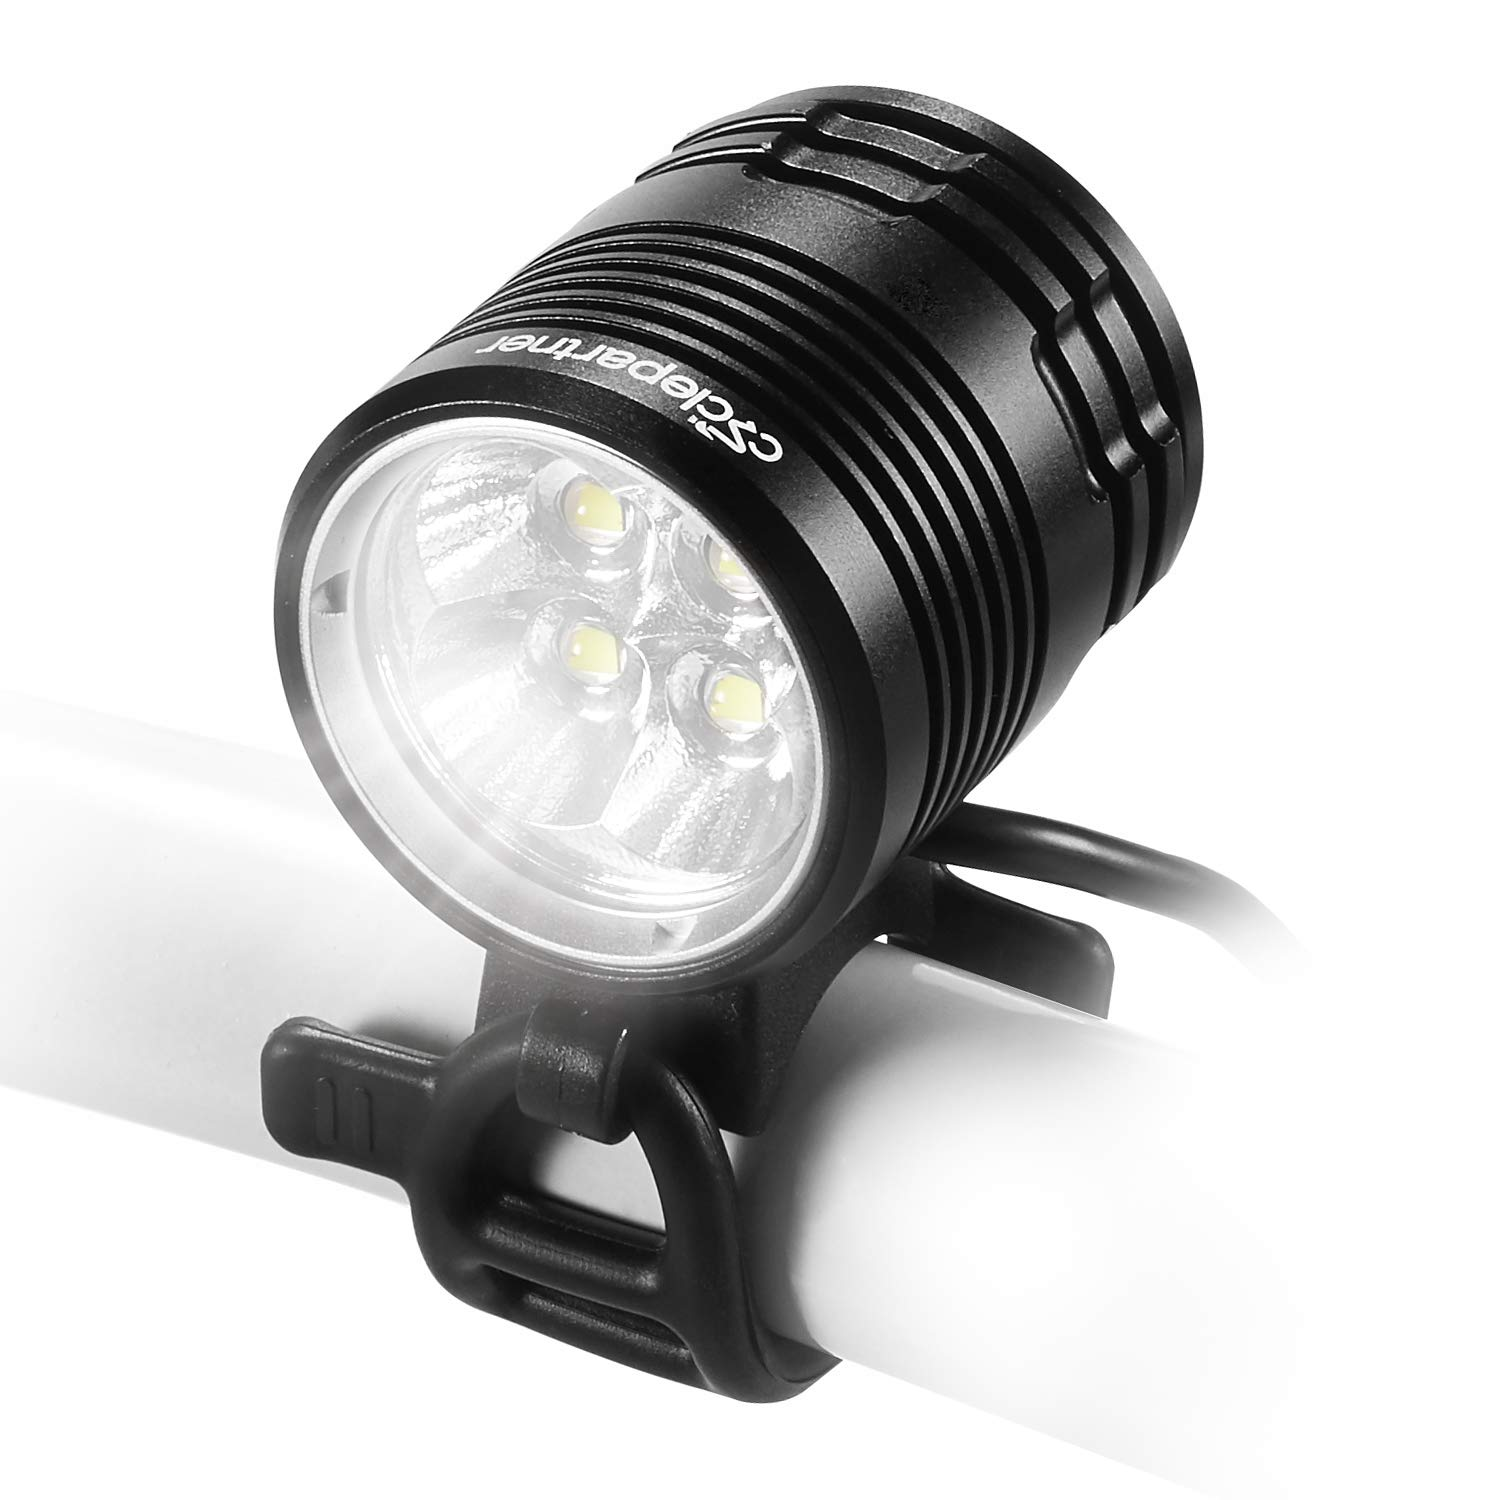 CYCLEPARTNER Discovery-3000 4LED Ultra Powerful 3000 Lumens Mountain Bike Light for MTB with 8800mAh Battery Pack Up to 7 Hours IP65 Waterproof